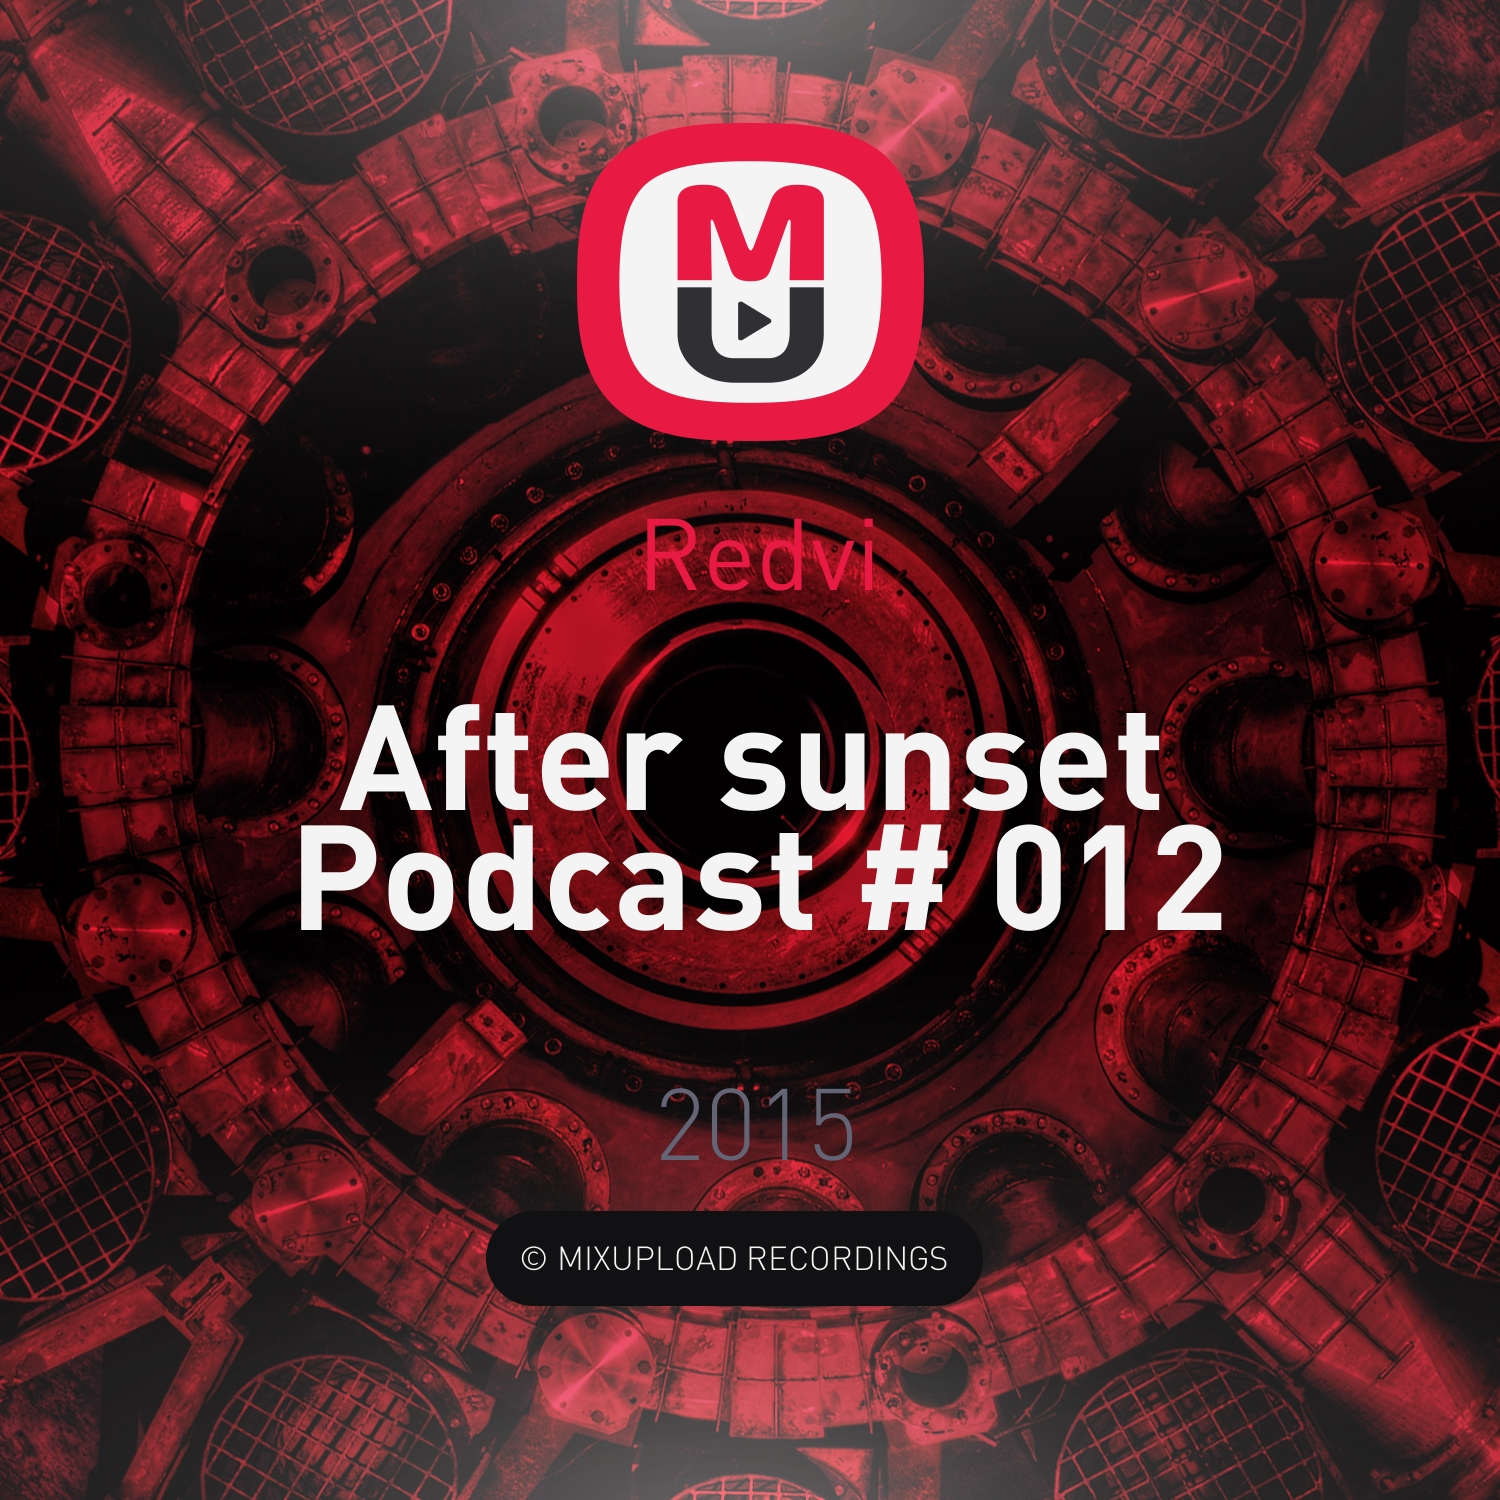 Redvi - After sunset Podcast # 012 ()